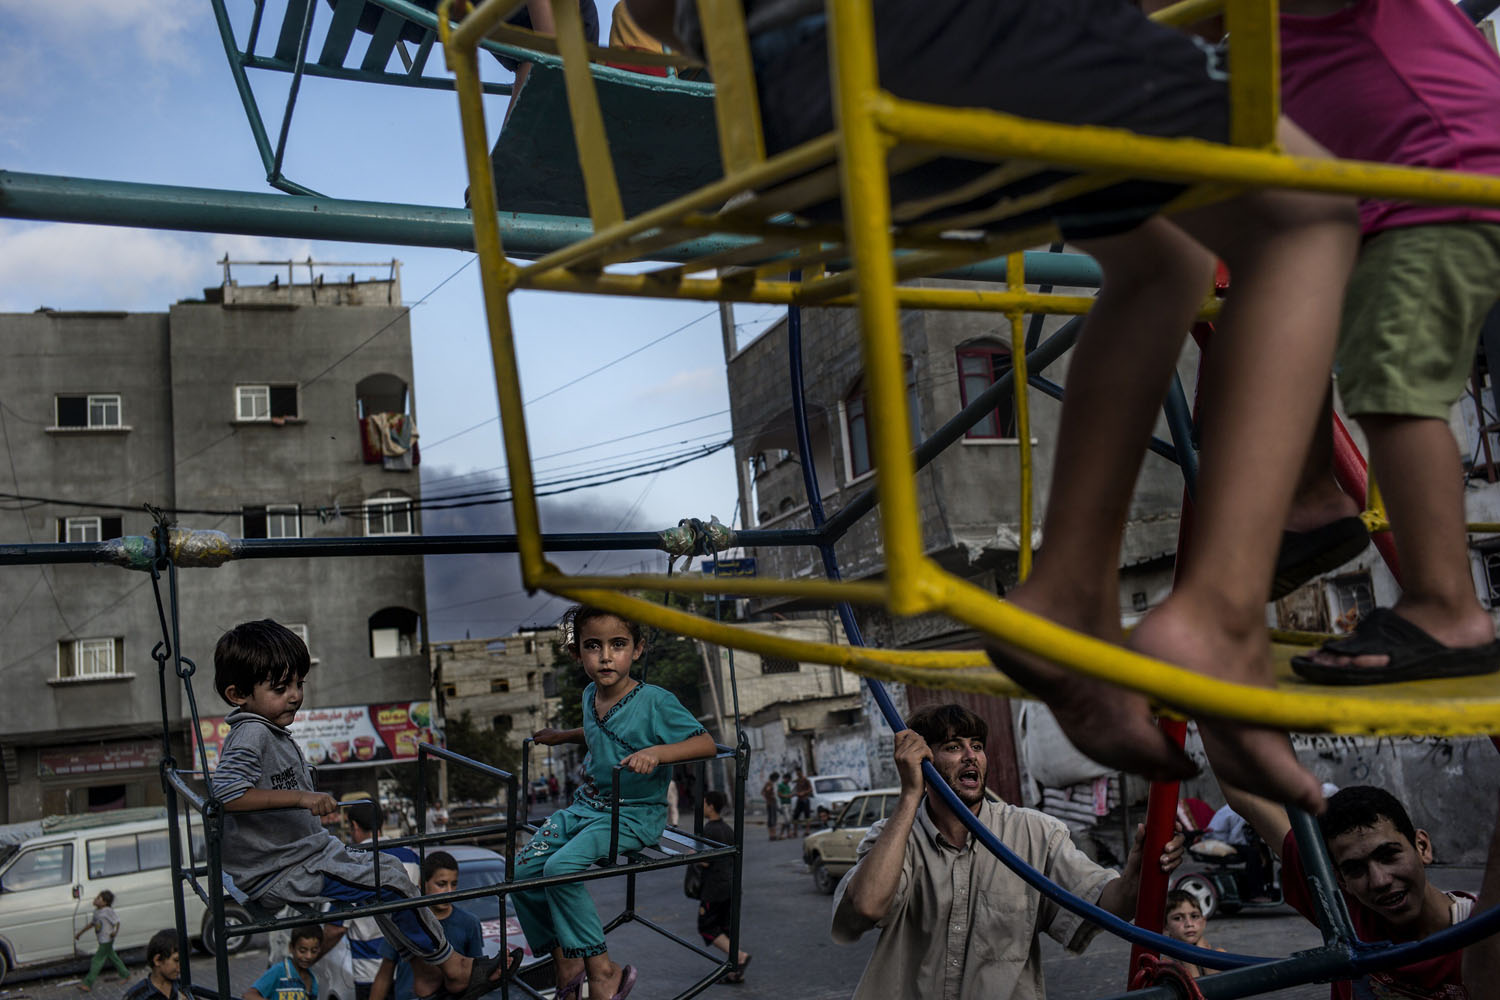 Jul. 29, 2014. Smoke billows in the background from the site of an Israeli strike as Palestinian children play on a mini ferris wheel in the northern Gaza Strip town of Beit Lahiya.